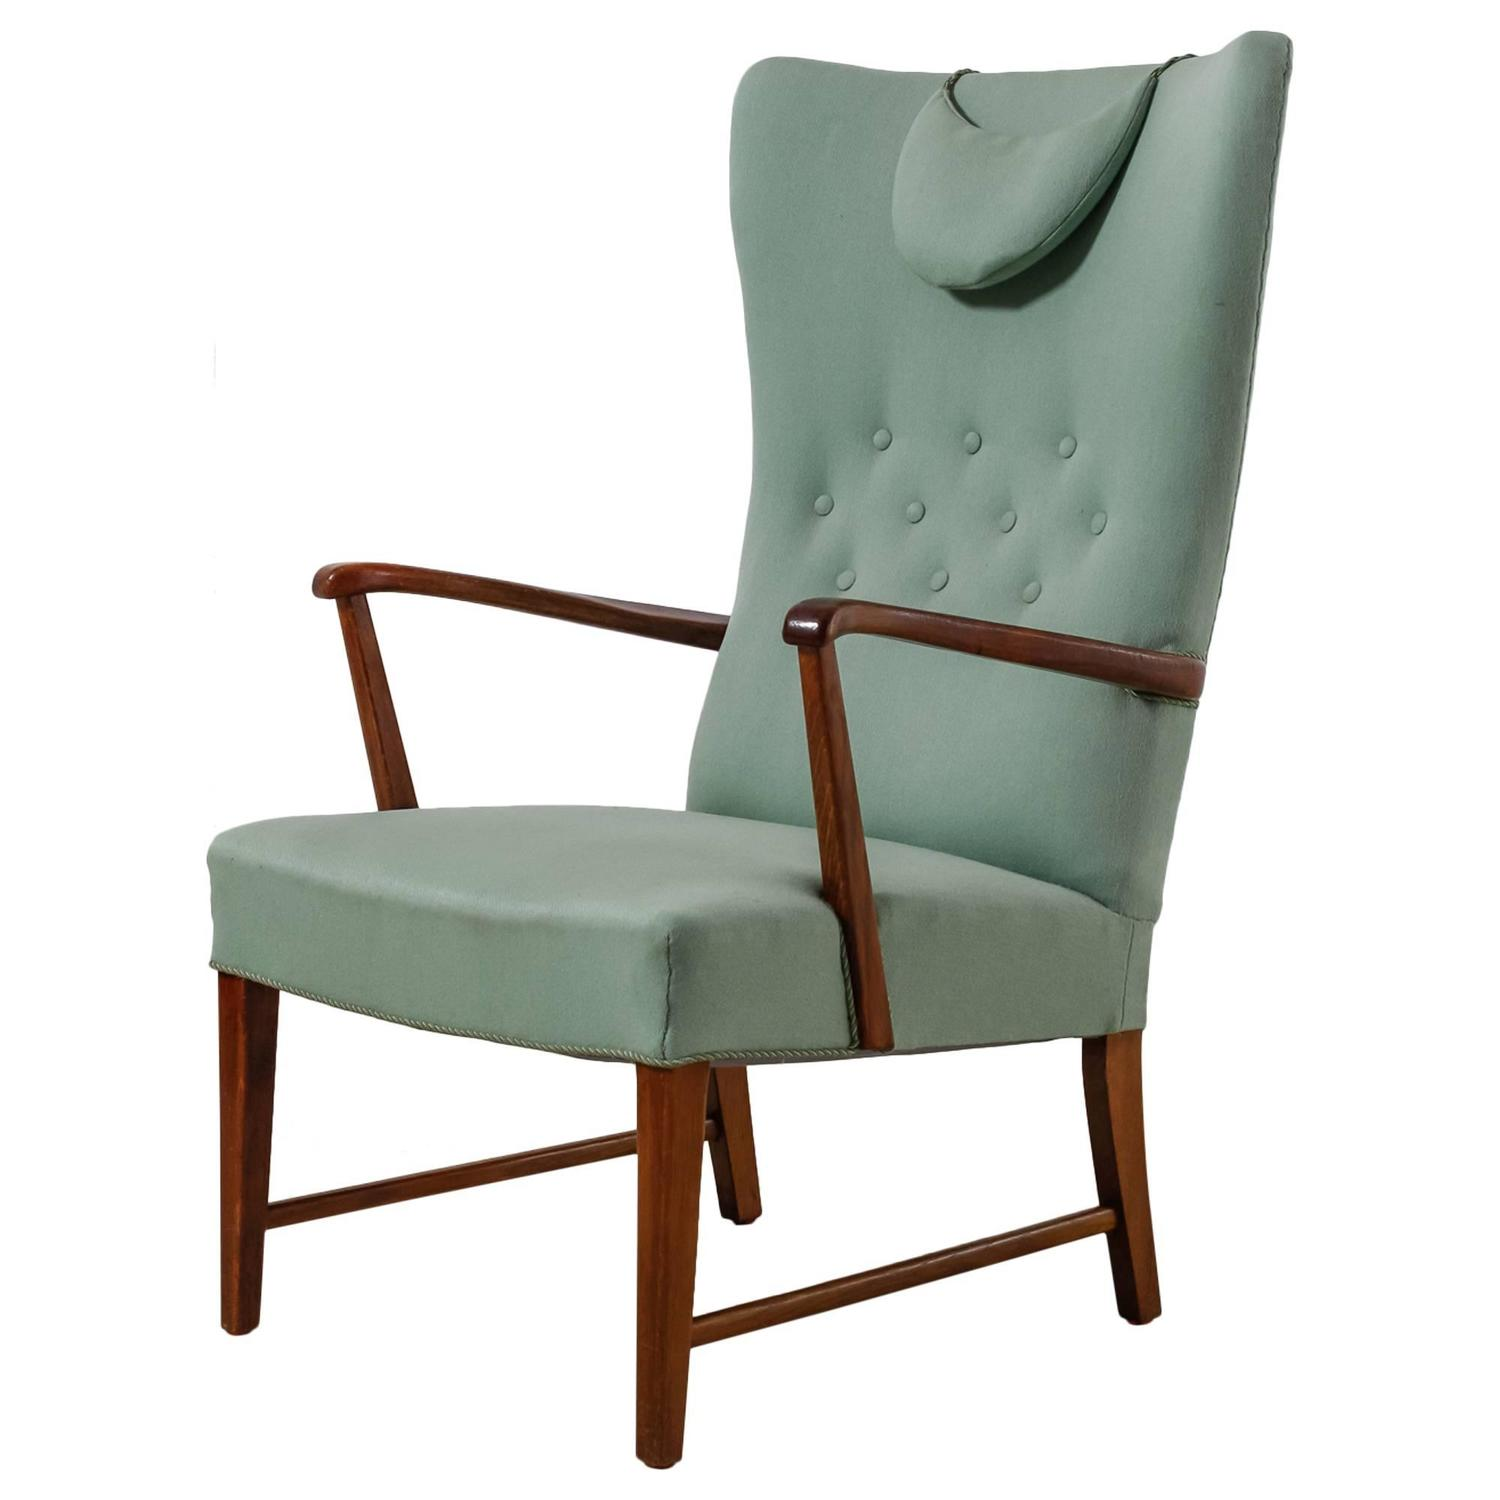 Danish High Back Lounge Chair with Mint Green Wool Upholstery